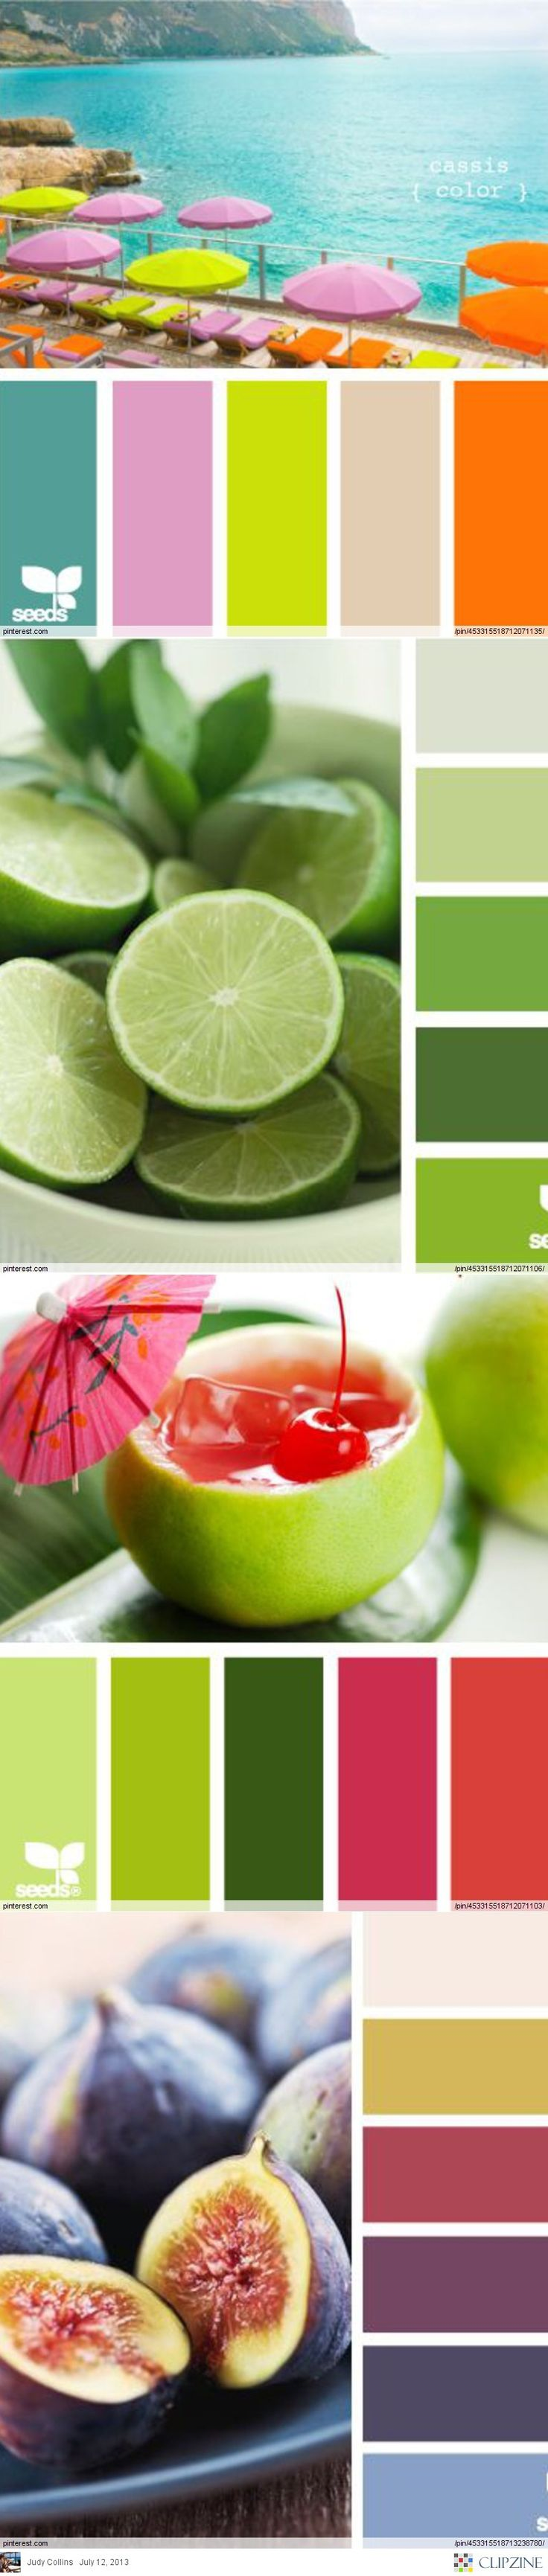 Web colors lime - Voor Meer Inspiratie Www Stylingentrends Nl Of Www Facebook